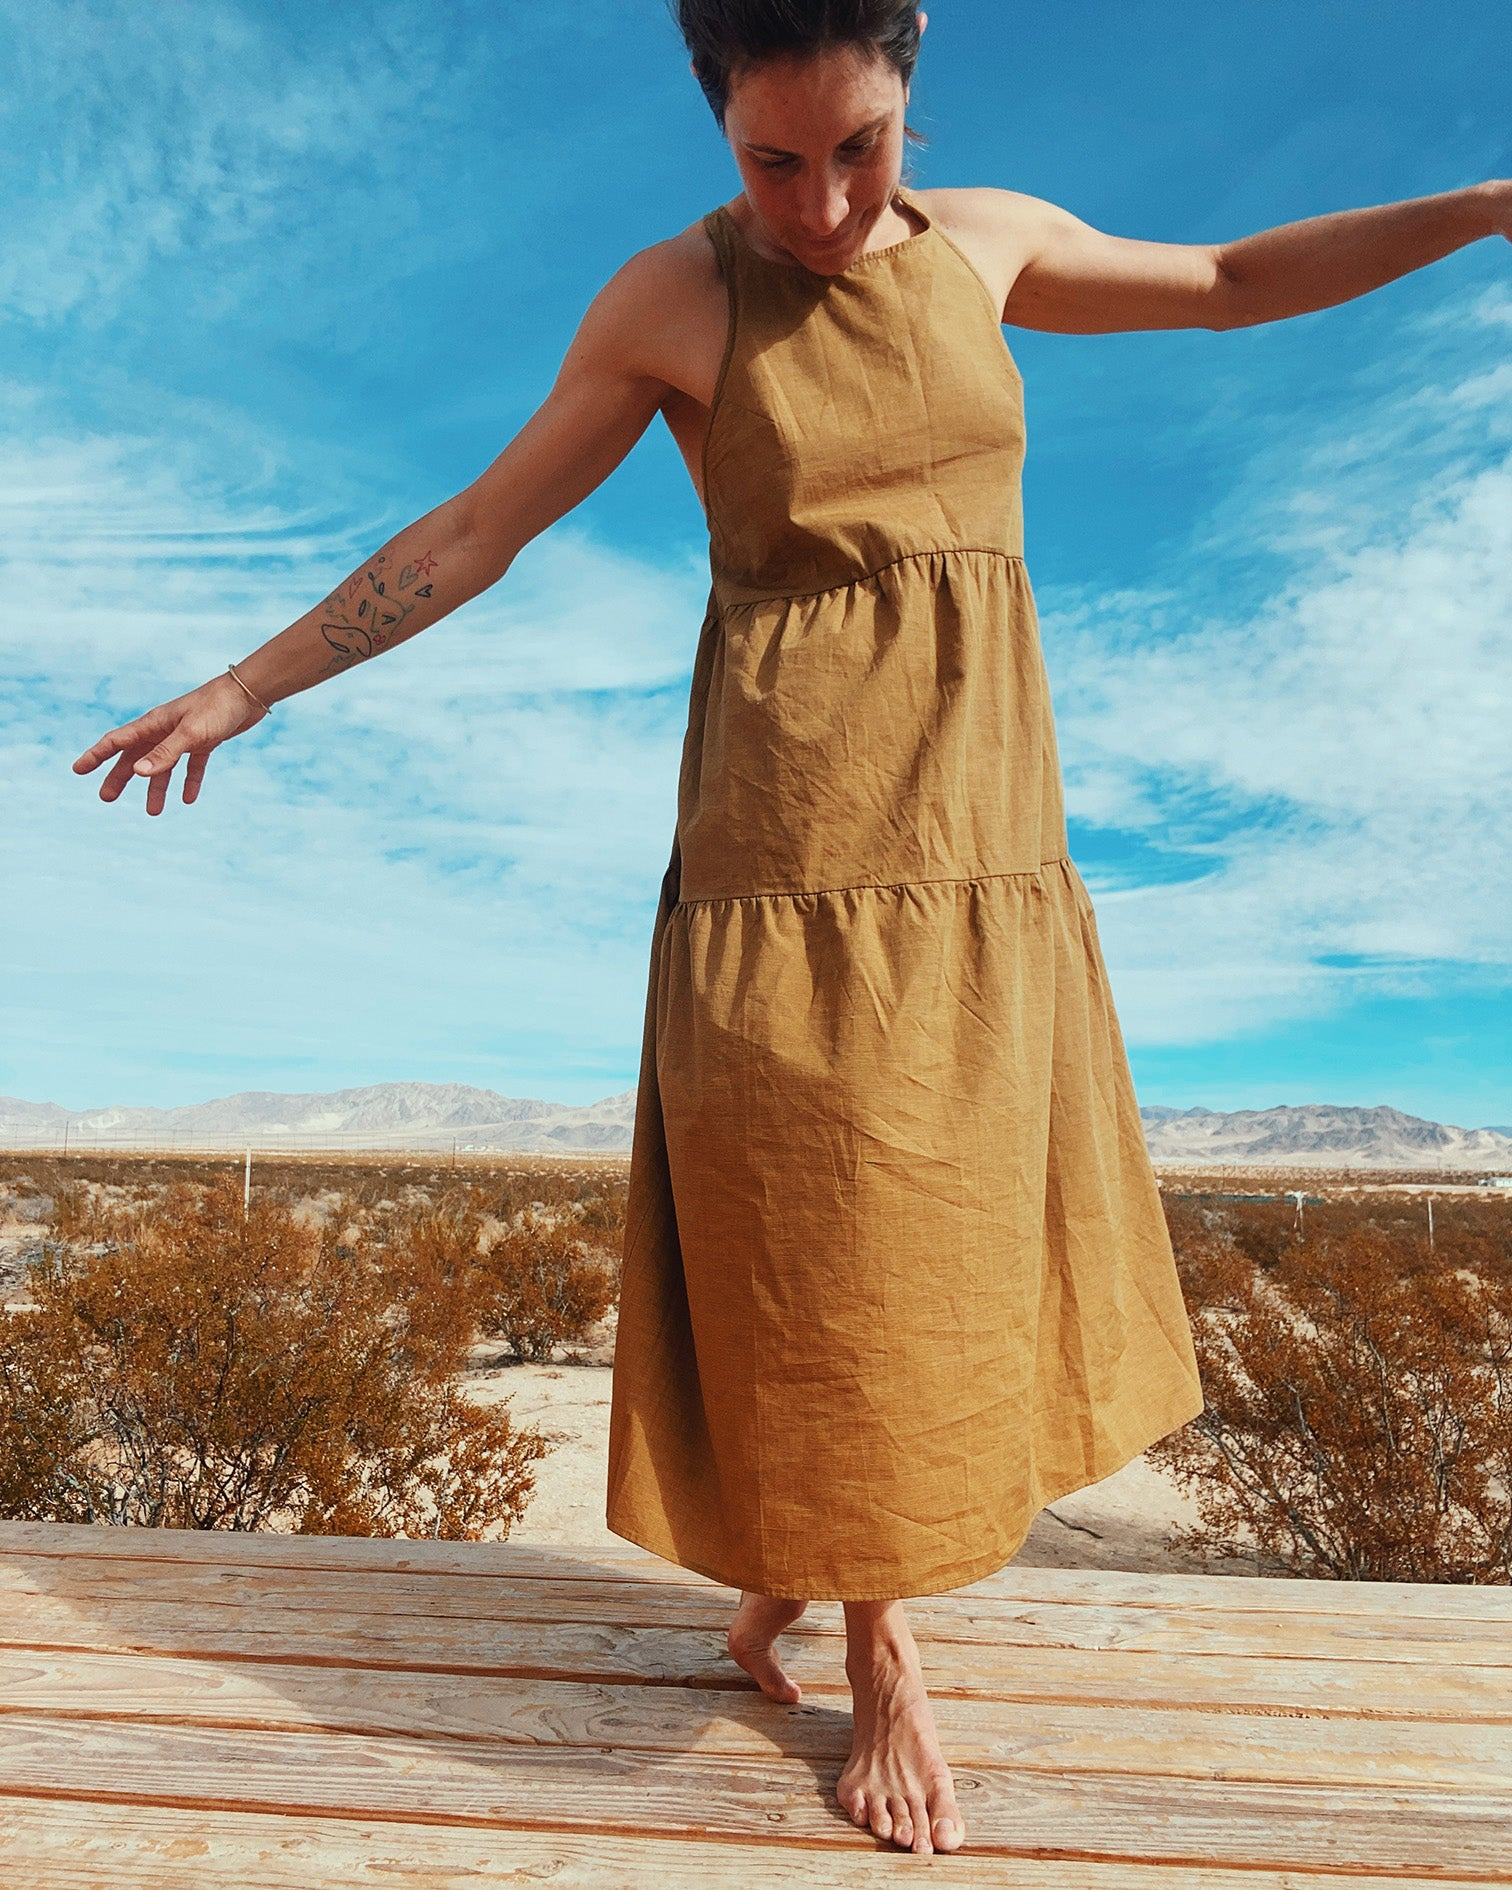 woman in mustard yellow long tiered dress dancing on wood deck in Joshua Tree with mountains and desert landscape in the background